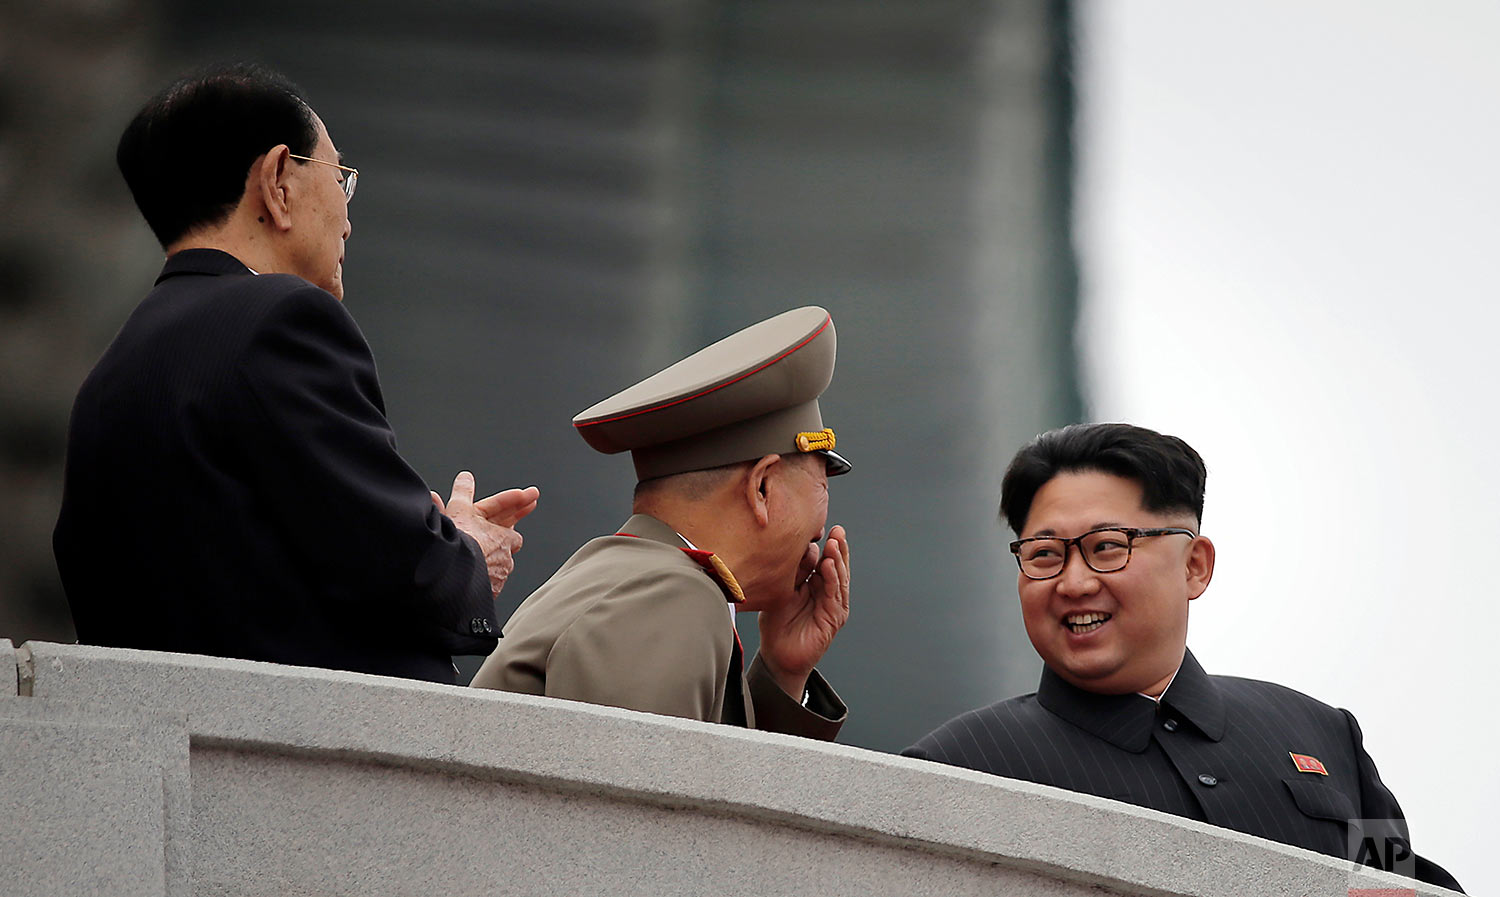 North Korean leader Kim Jong Un, right, smiles at Hwang Pyong So, the top political officer of the Korean People's Army, center, and Kim Yong Nam, the head of North Korea's parliament, left, as they watch a parade at Kim Il Sung Square in Pyongyang, North Korea, on May 10, 2016. (AP Photo/Wong Maye-E)